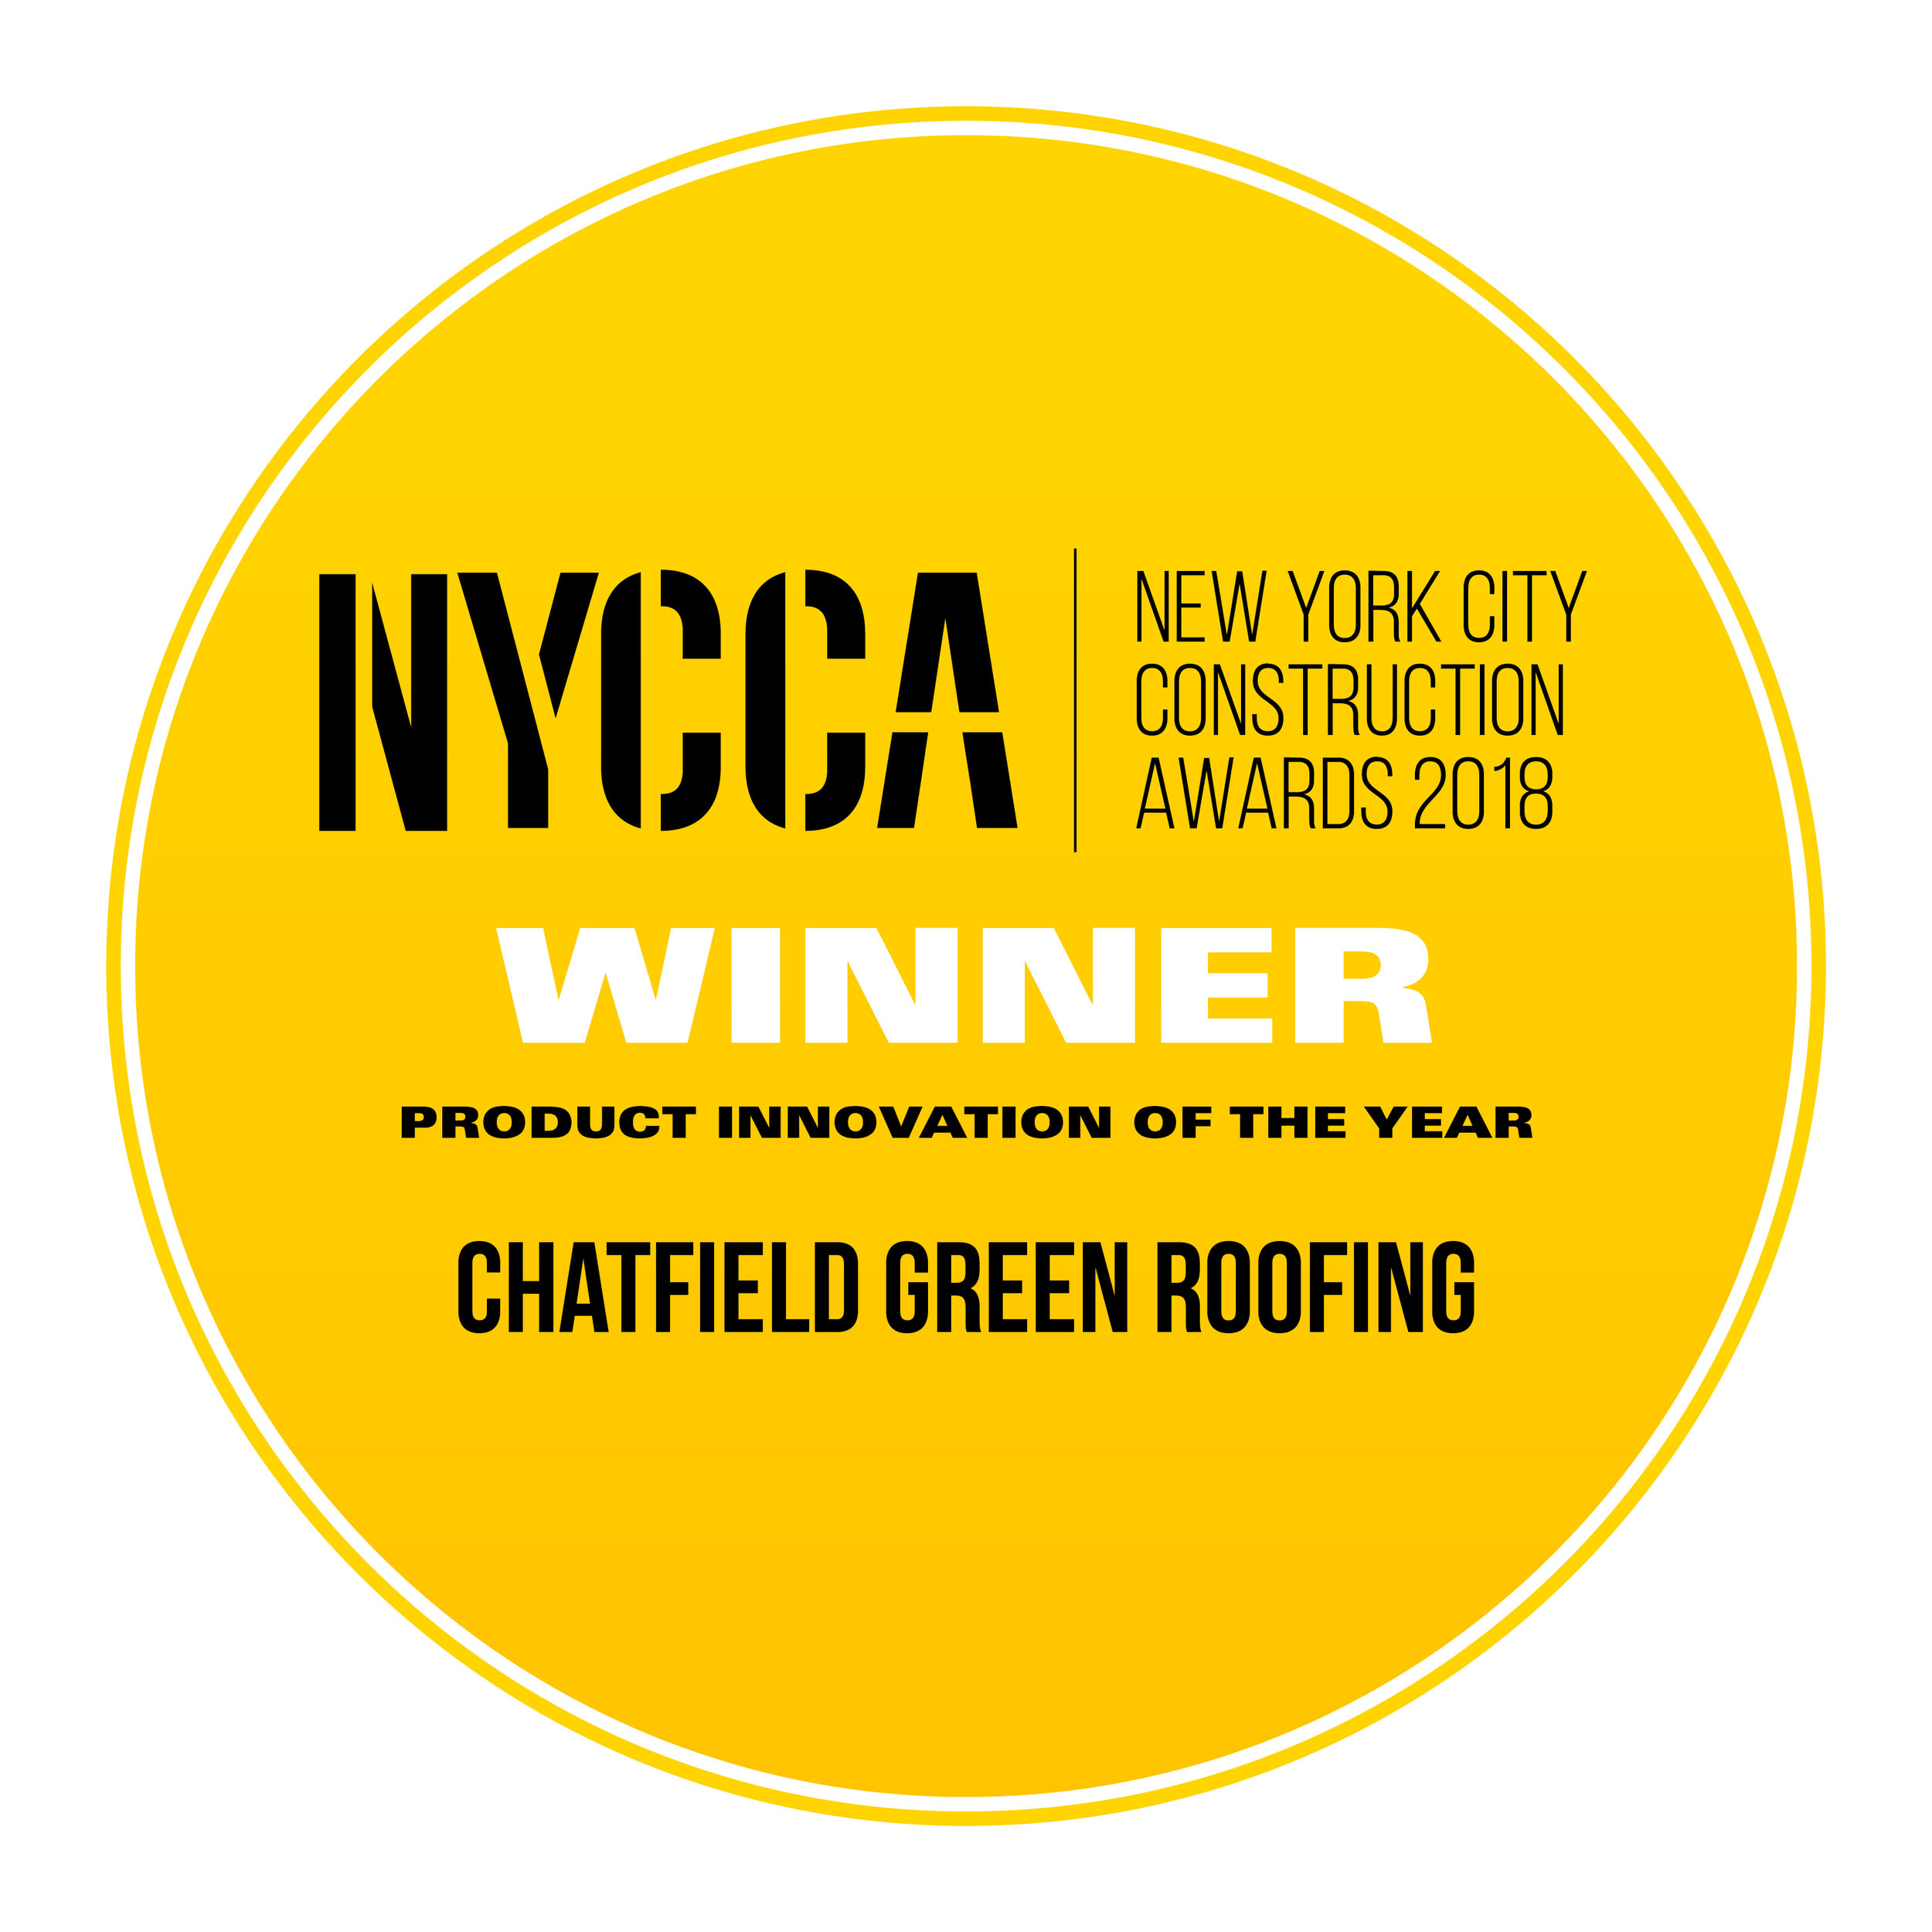 Chatfield Green Roofing - Product Innovation of the Year